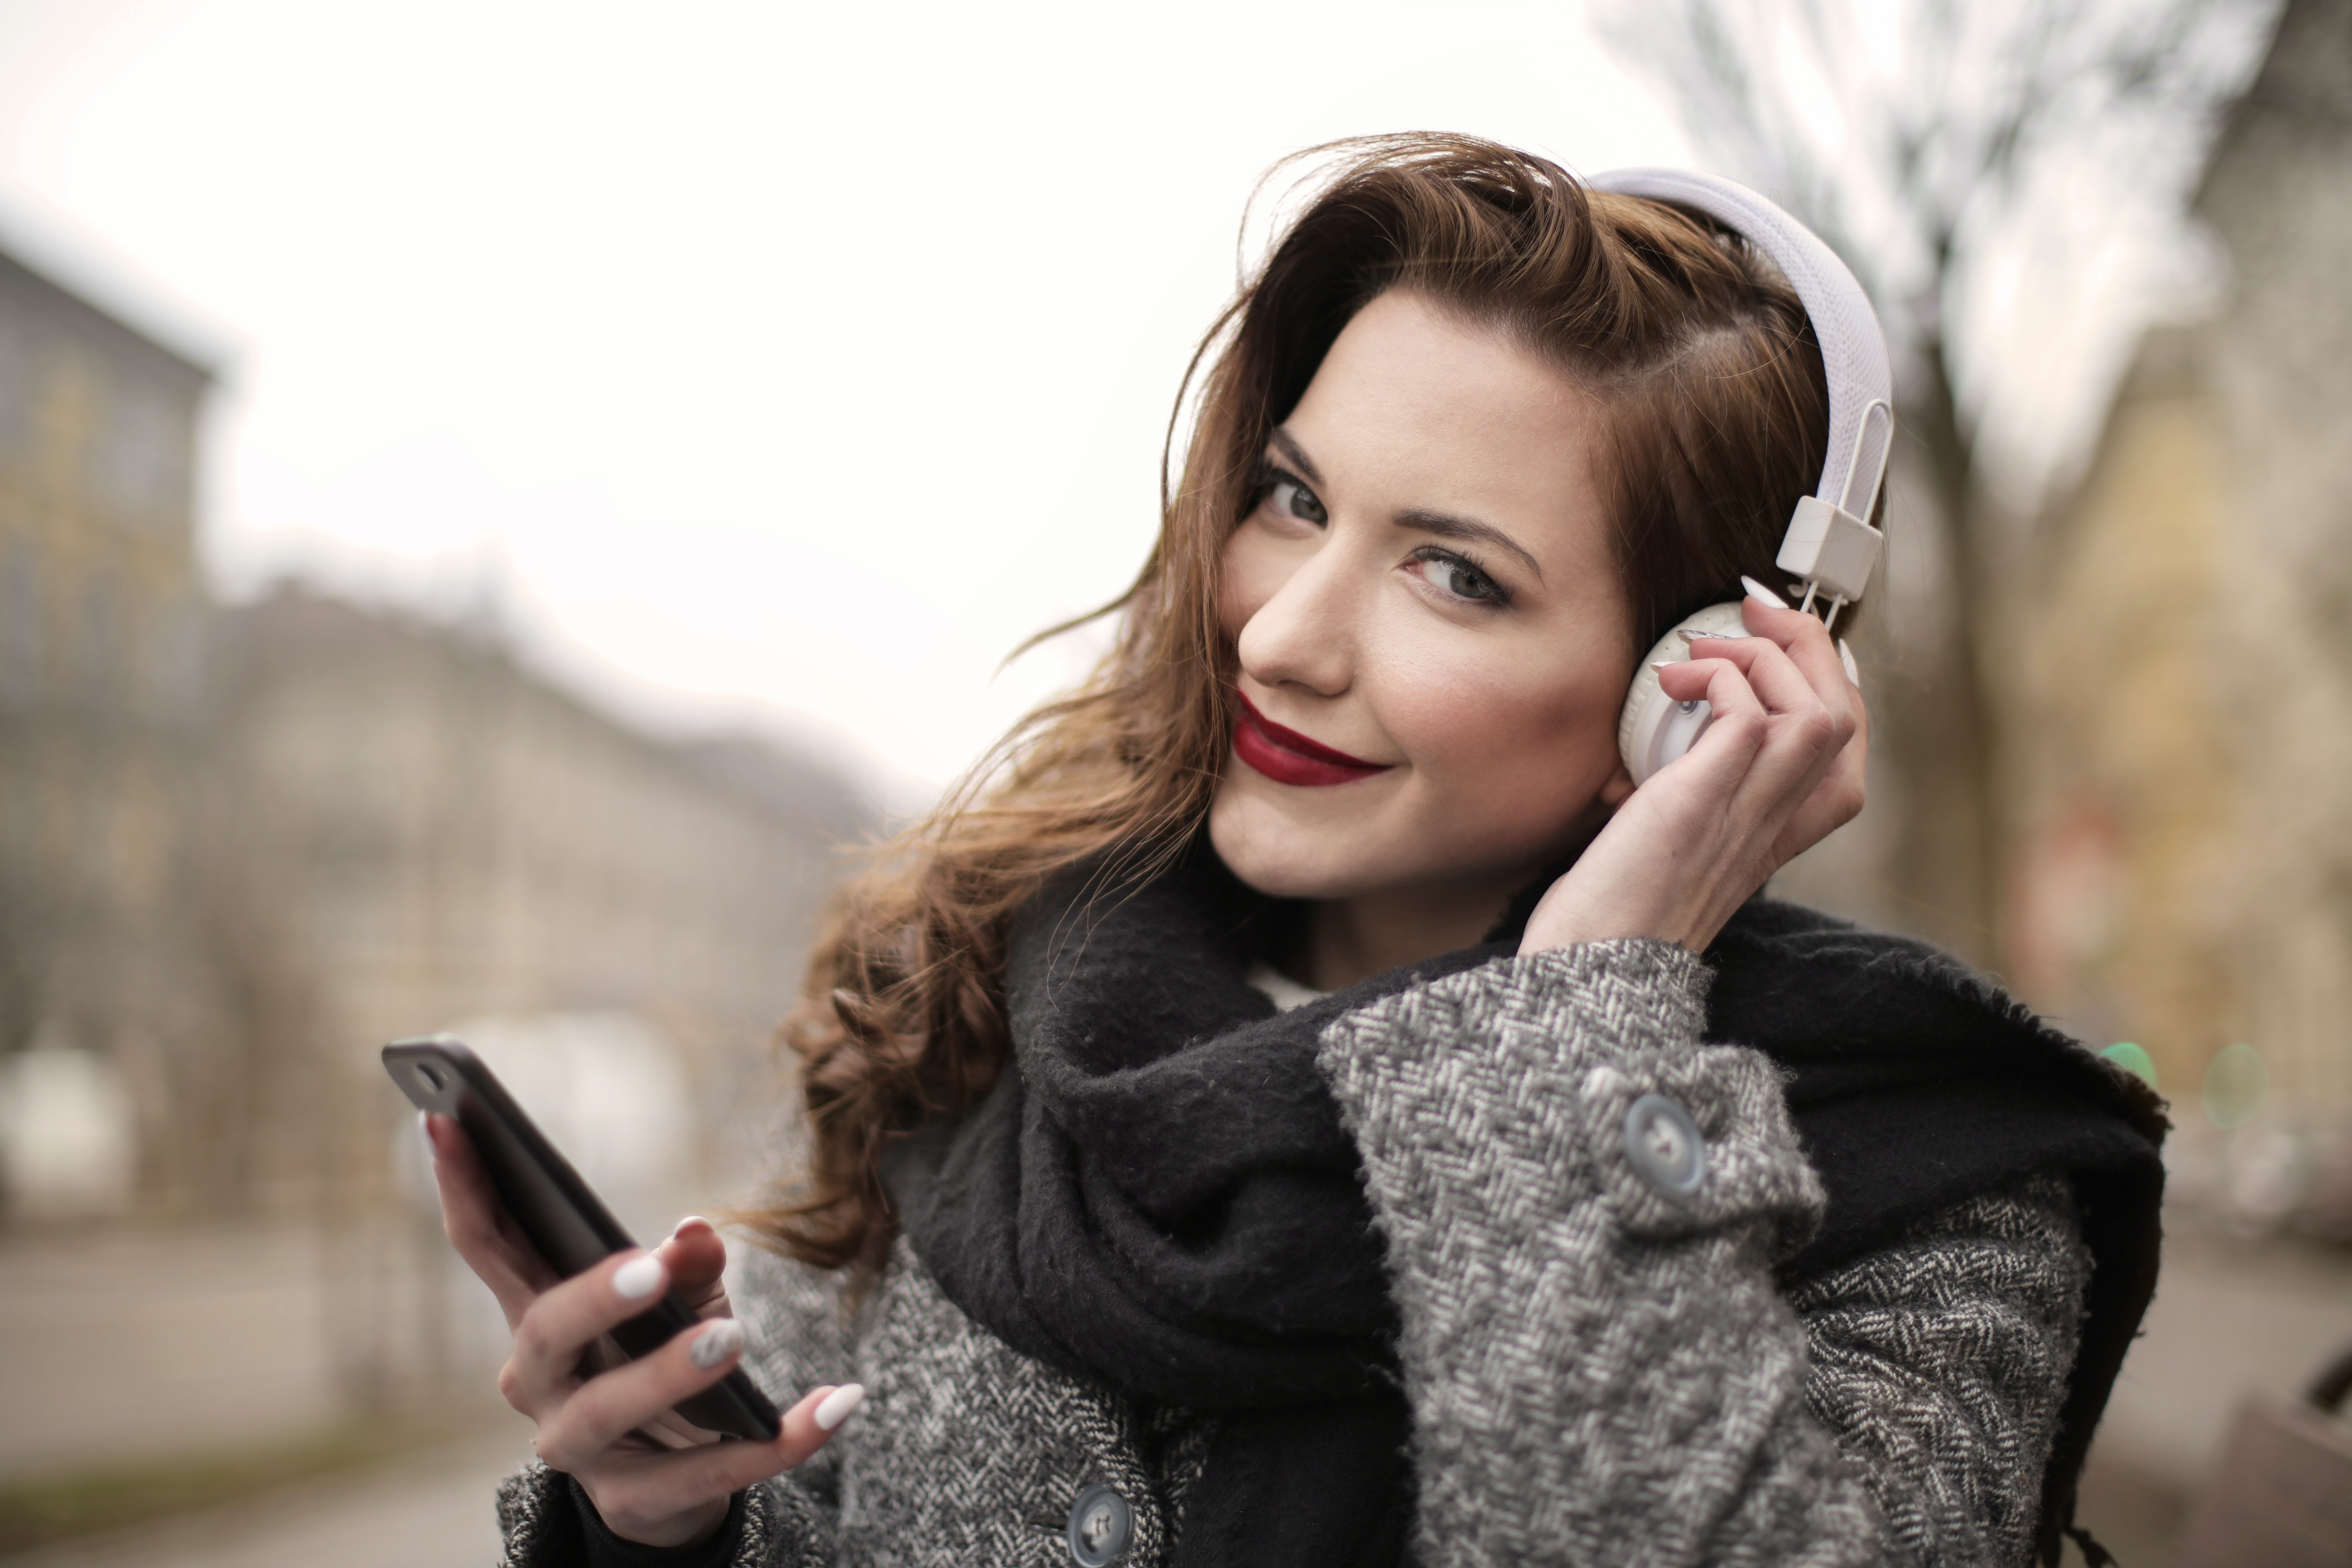 Woman listening to music and using smartphone | Free Photo |Woman Listening To Music